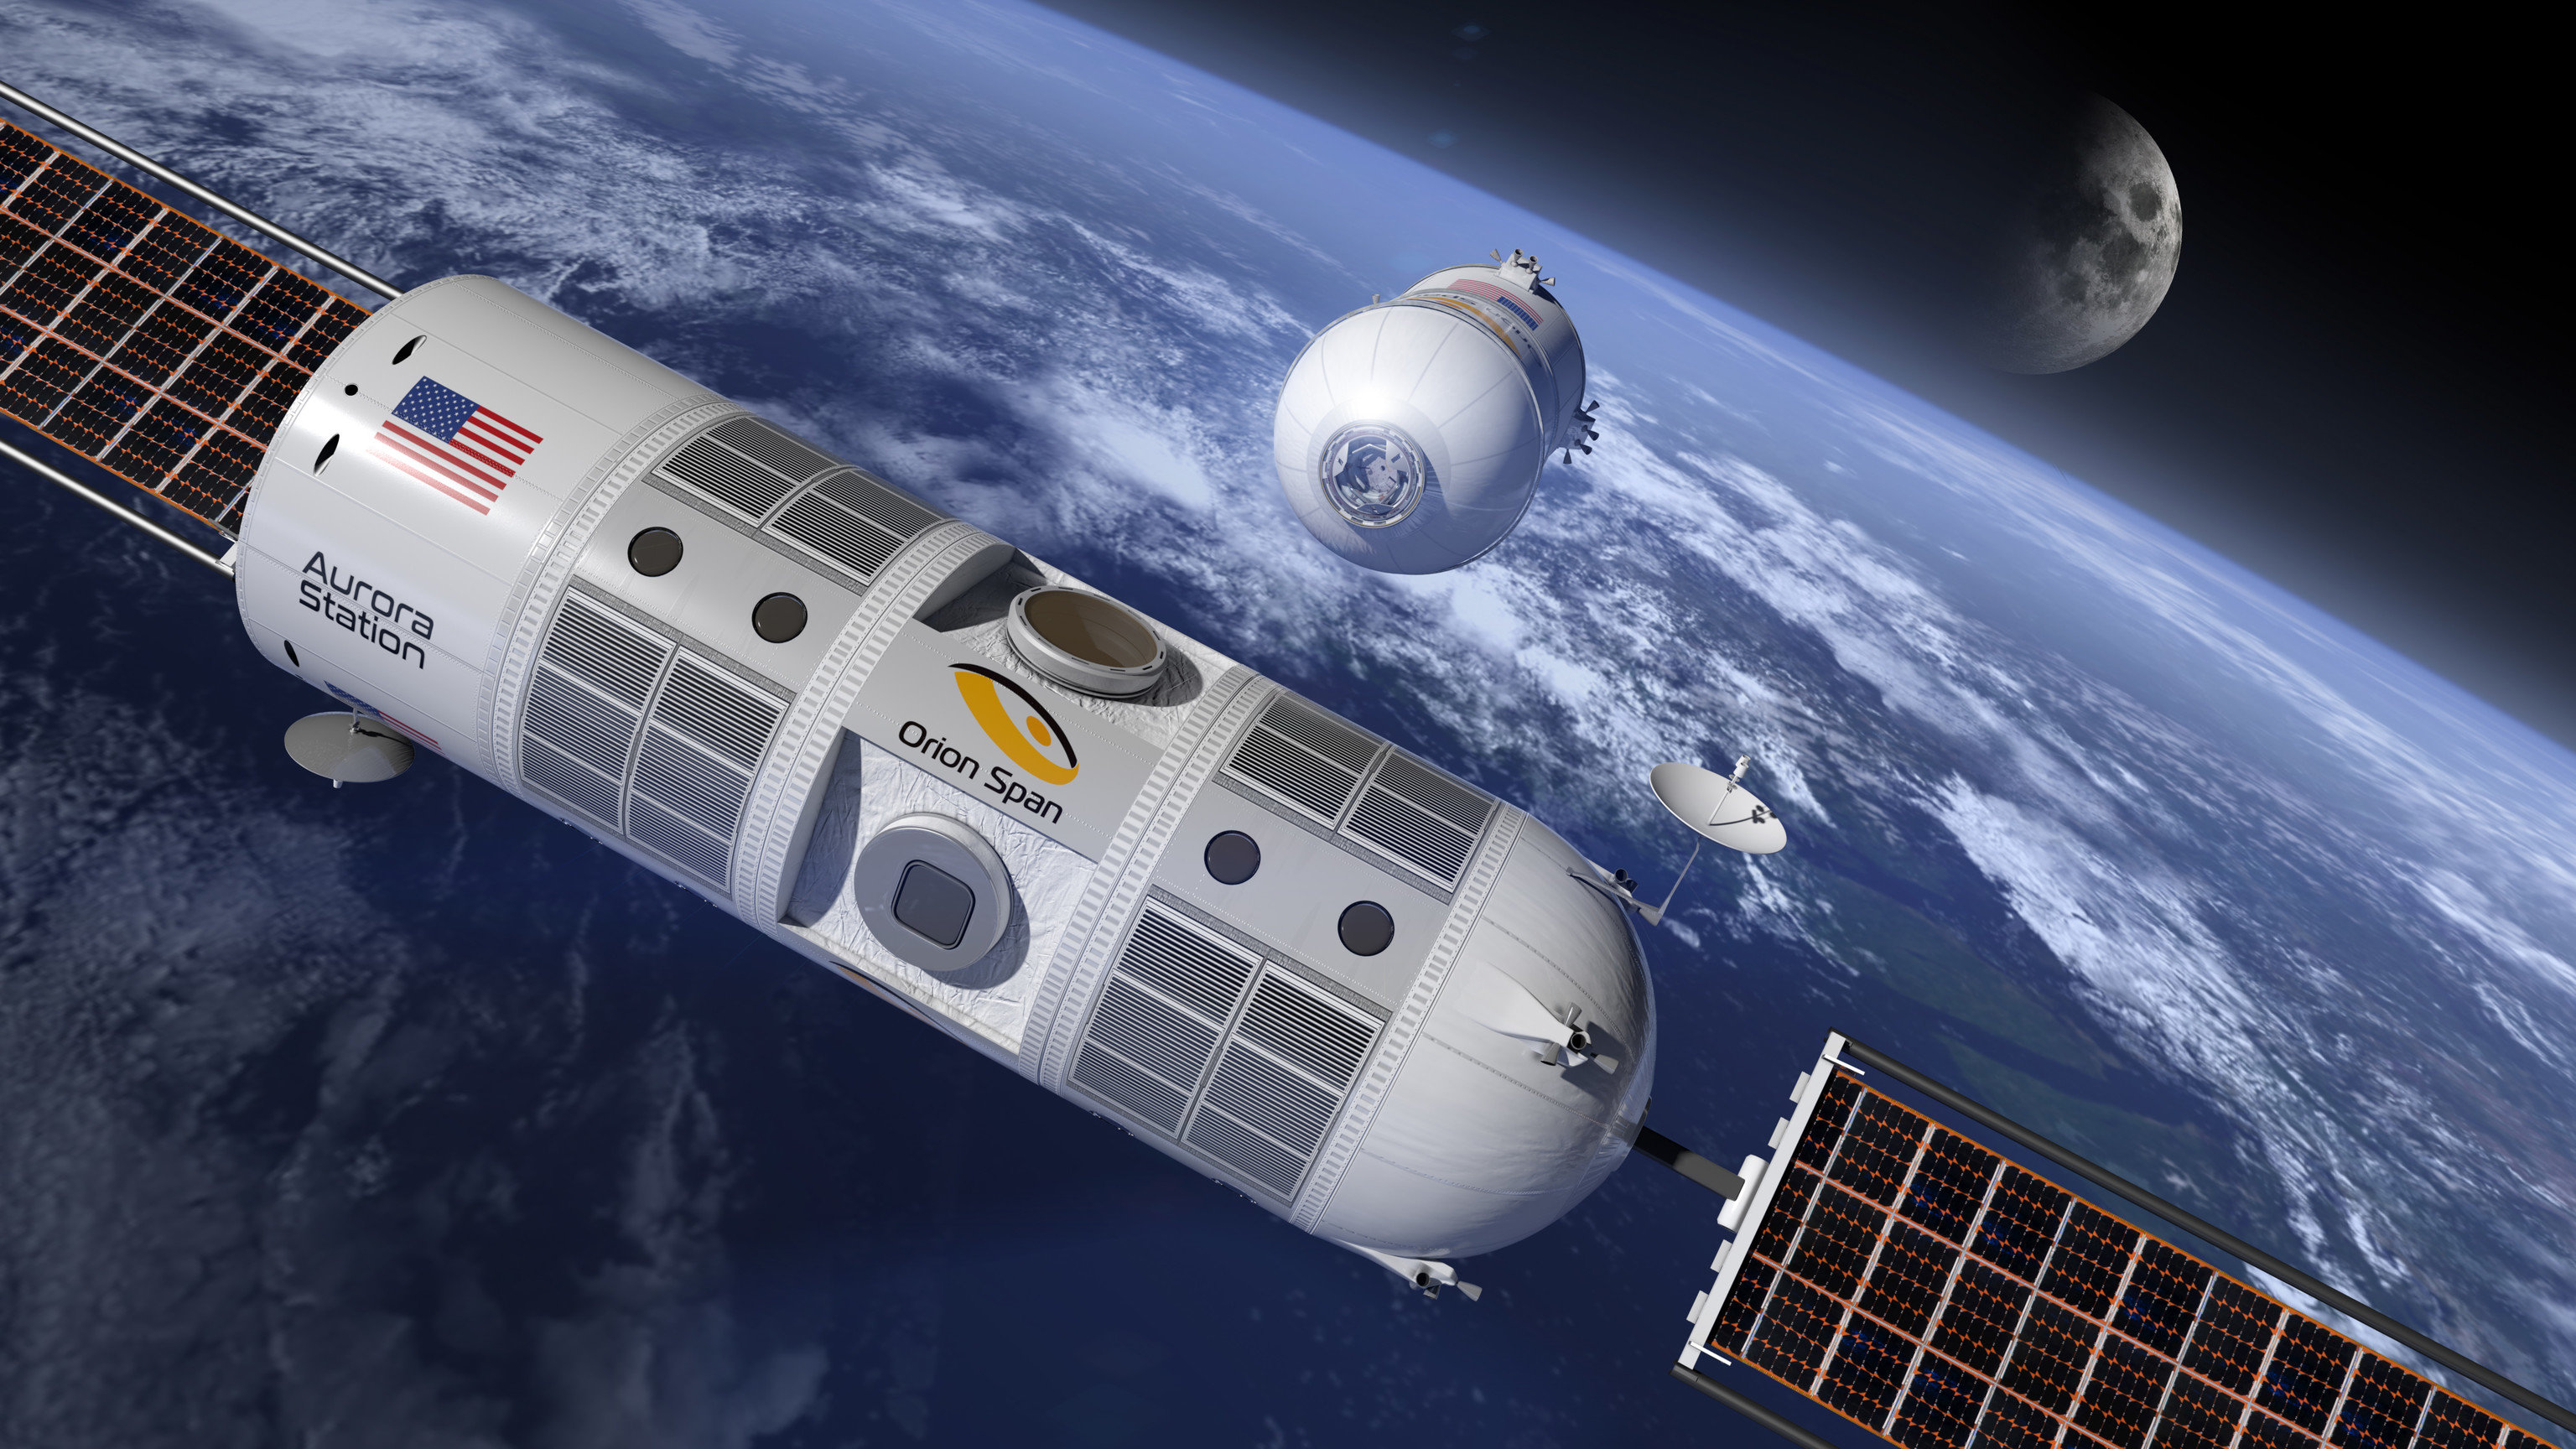 Hotels News Offbeat spacecraft atmosphere aerospace engineering satellite space shuttle spaceplane outer space space station air travel space earth